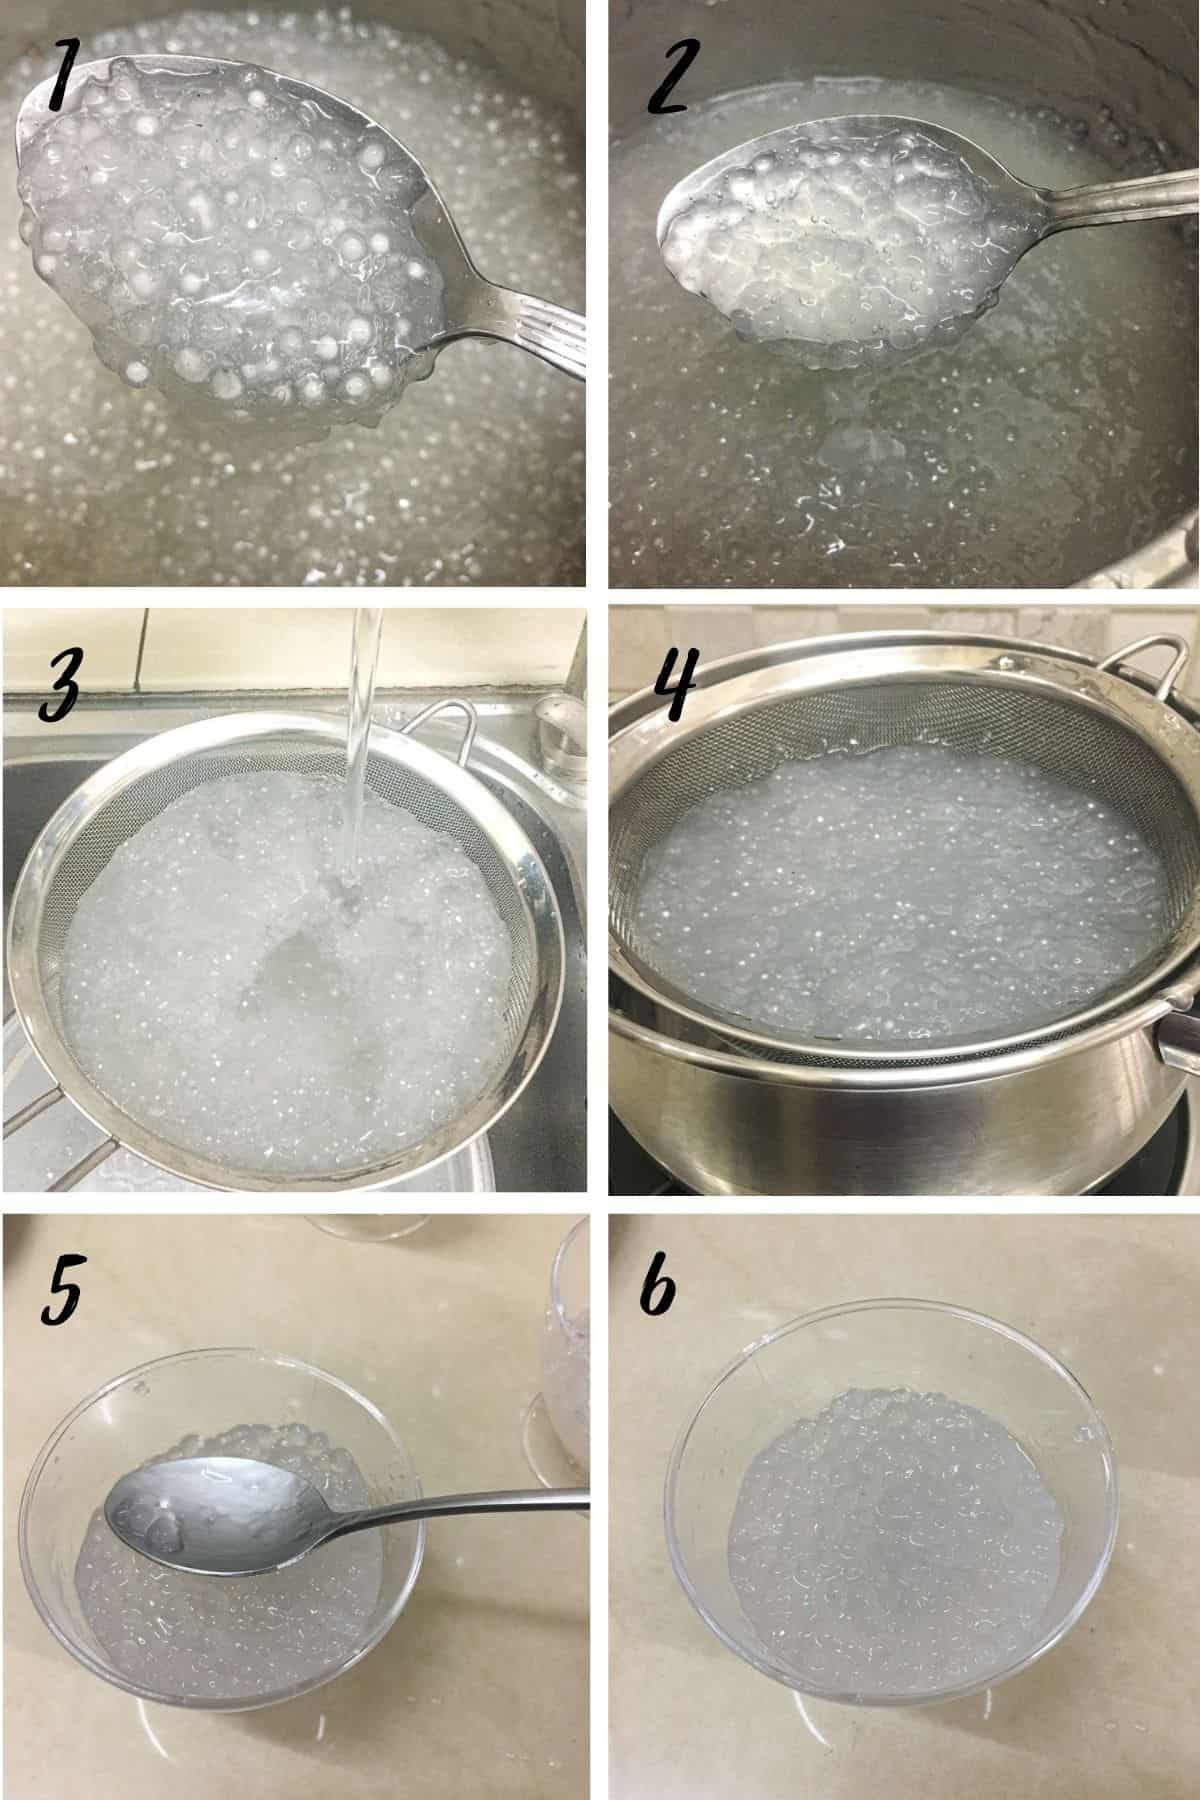 A poster of 6 images showing how to cook sago, strain it and spoon it into individual cups